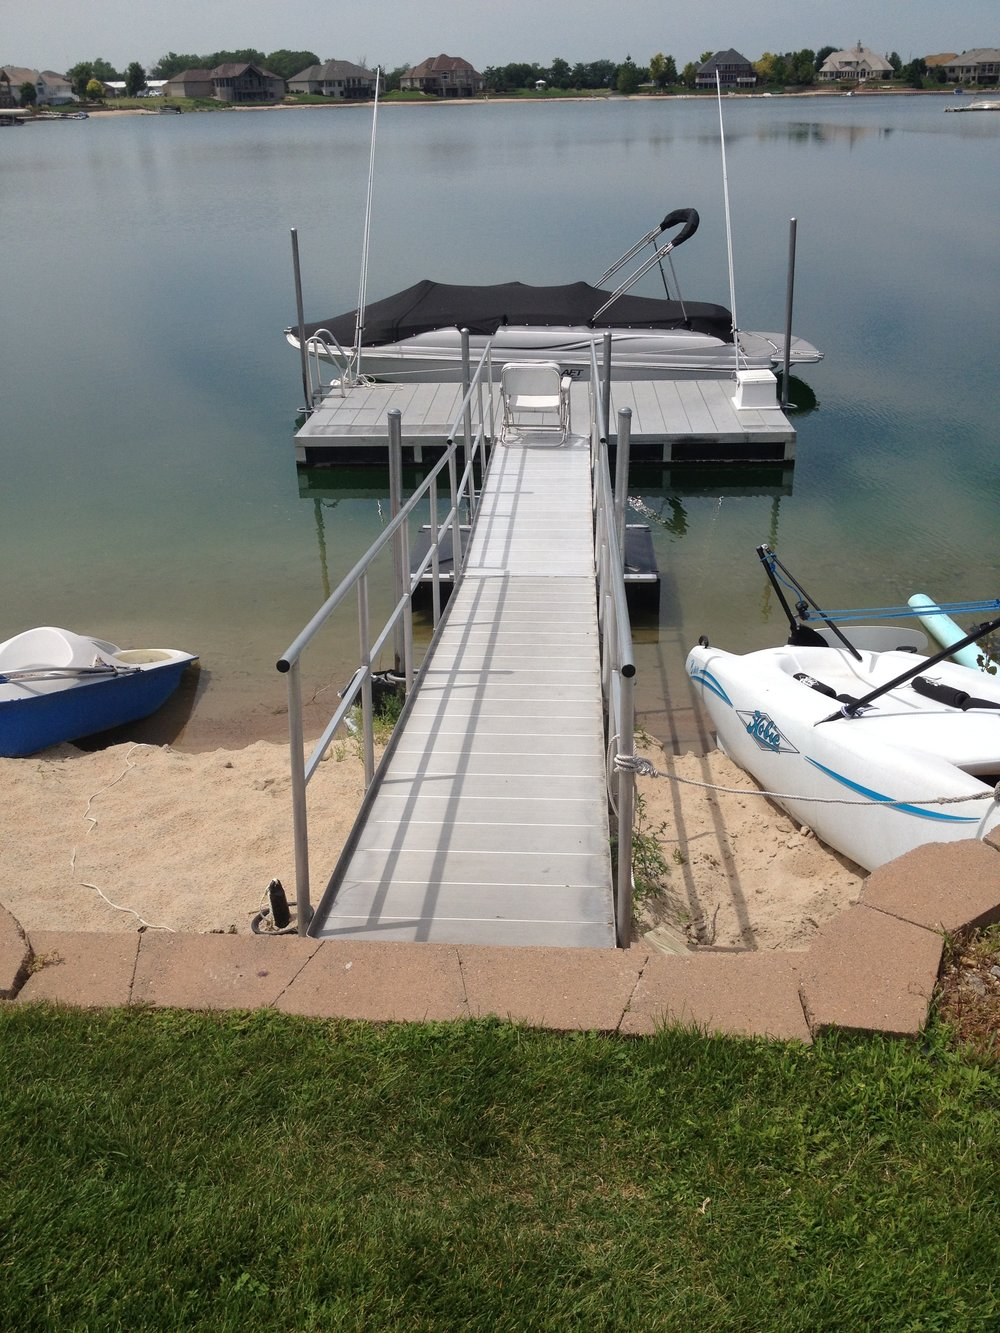 Hotwood's 816 aluminum dock and extended aluminum walkway installed in Grand Island, Nebraska. This is a life long dock that needs very little maintenance over the years.